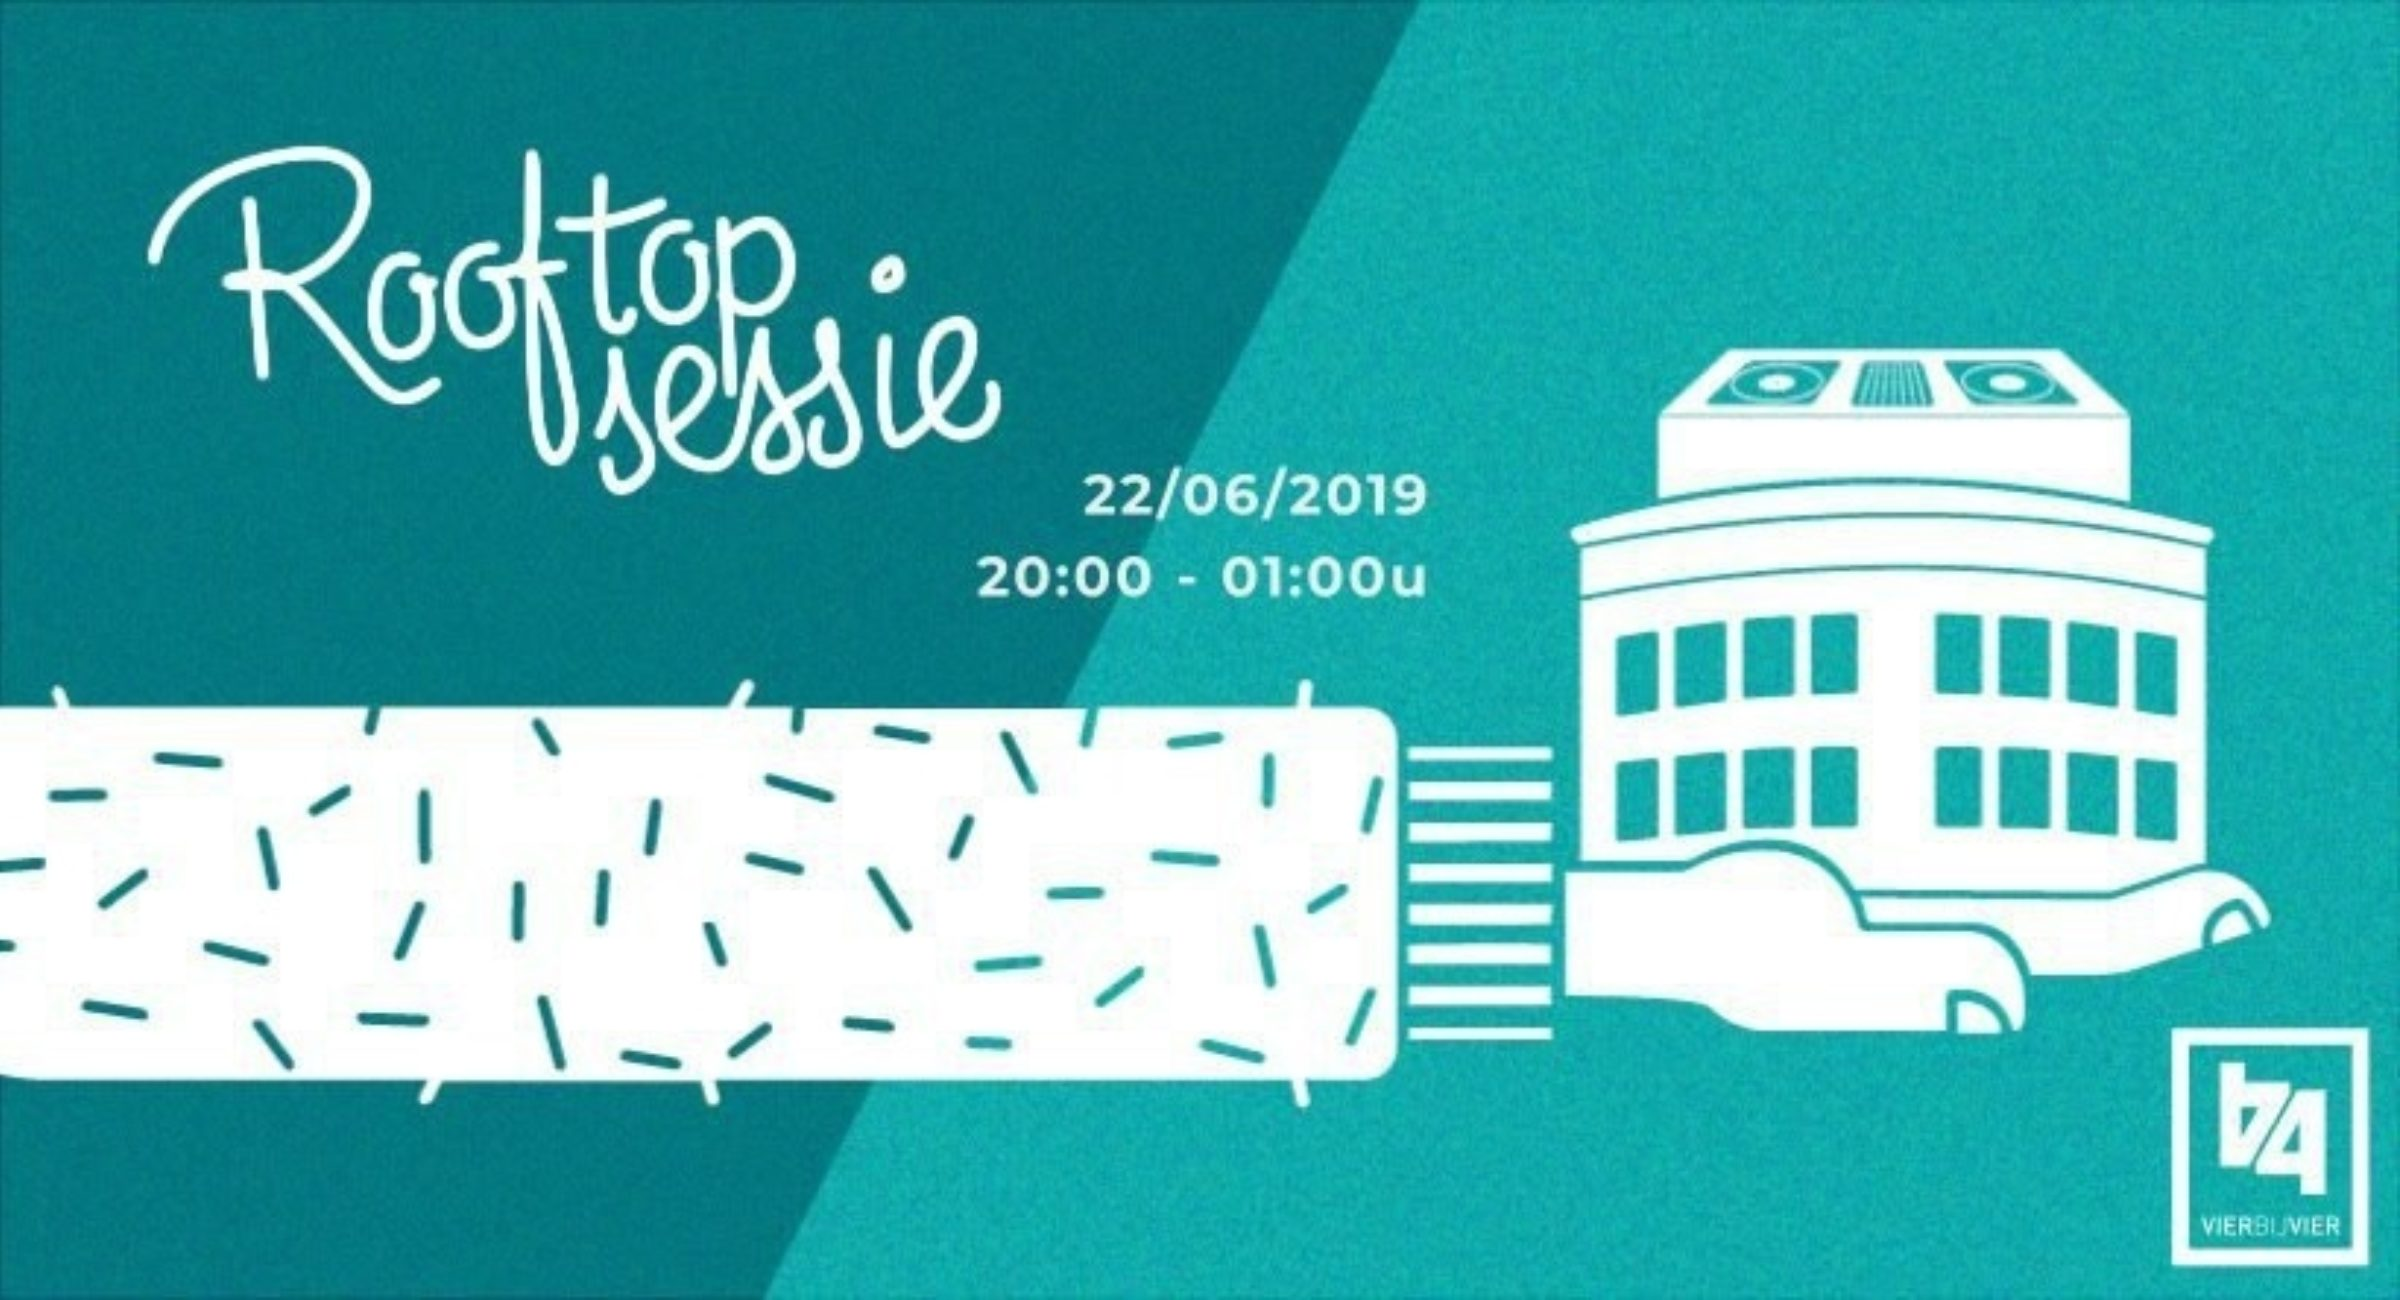 Rooftop Sessie 2577 1554286967 35hxfuy4aw